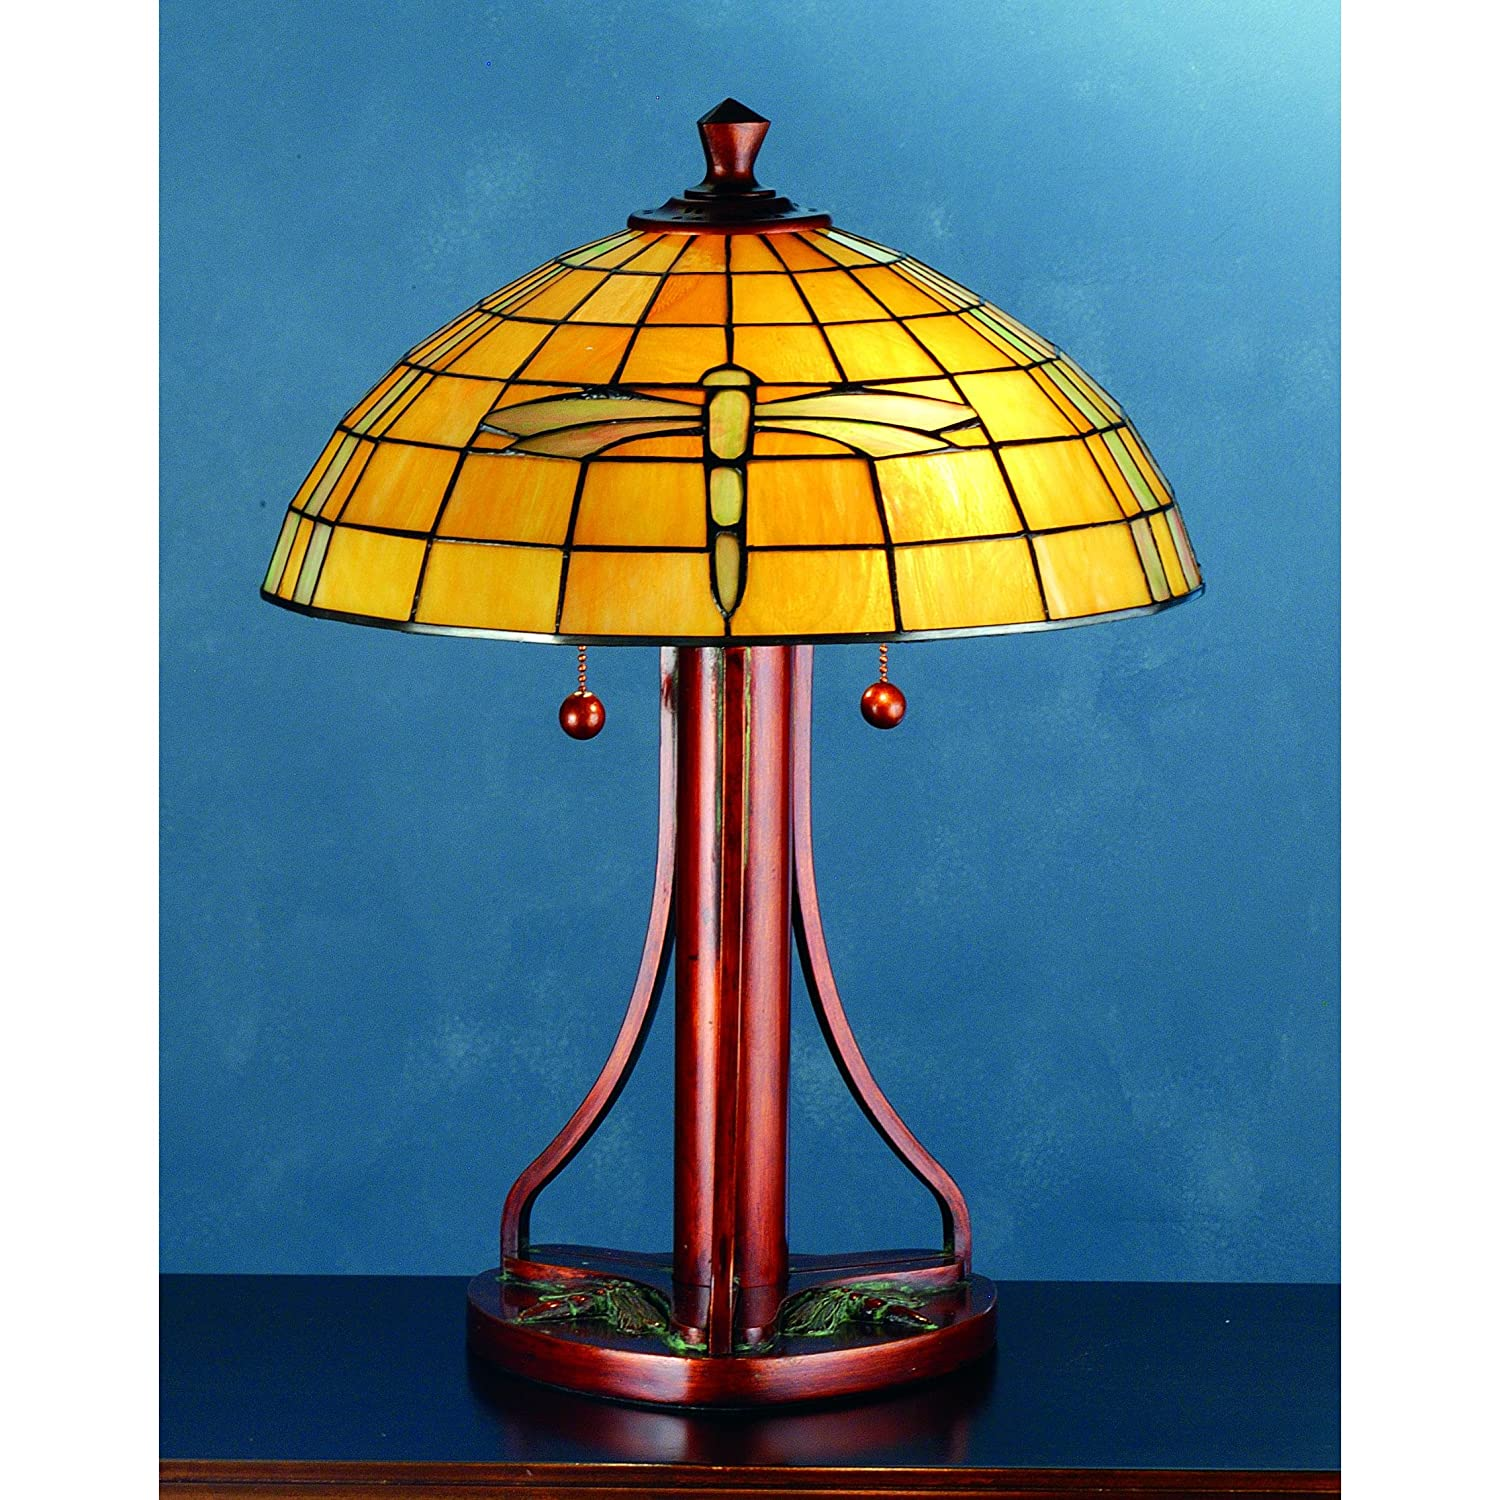 22 Quot H Arts And Crafts Dragonfly Table Lamp Guide Pyramex